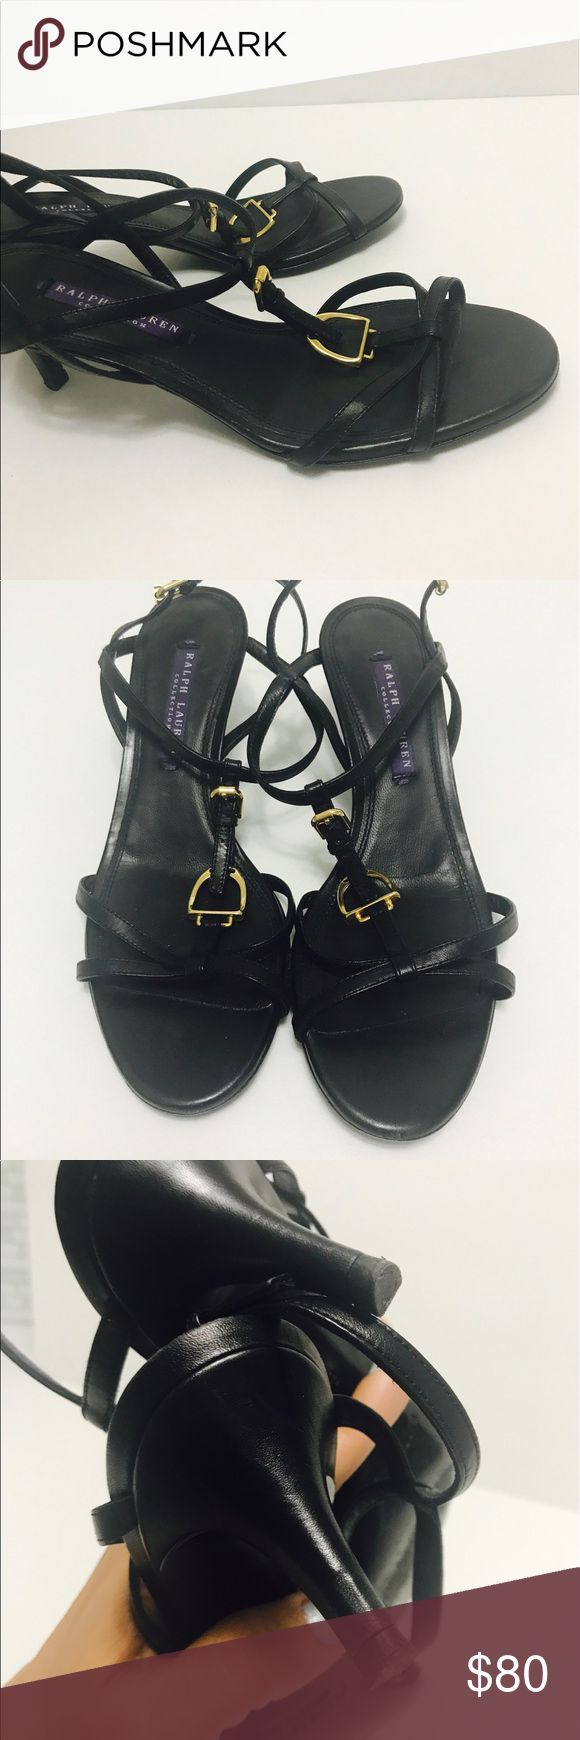 "Ralph Lauren PURPLE LABEL Black Strappy Shoes Ralph Lauren Purple Label strappy 2-2.5"" heel preowned Black Gold accents 6 1/2 B Ralph Lauren Purple Label Shoes Heels"